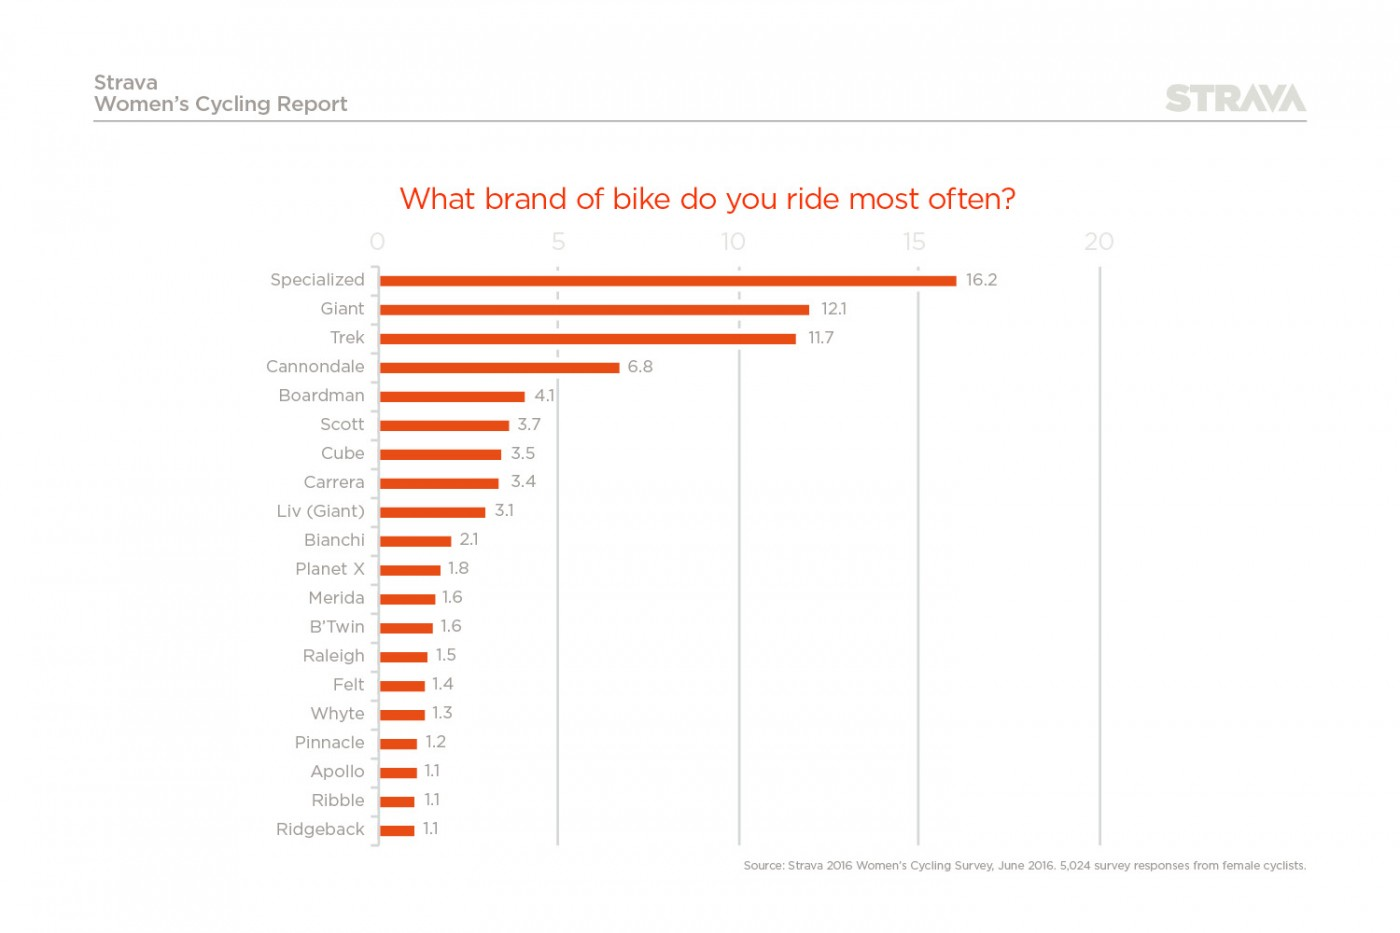 Most popular brands of bike owned by women in the UK